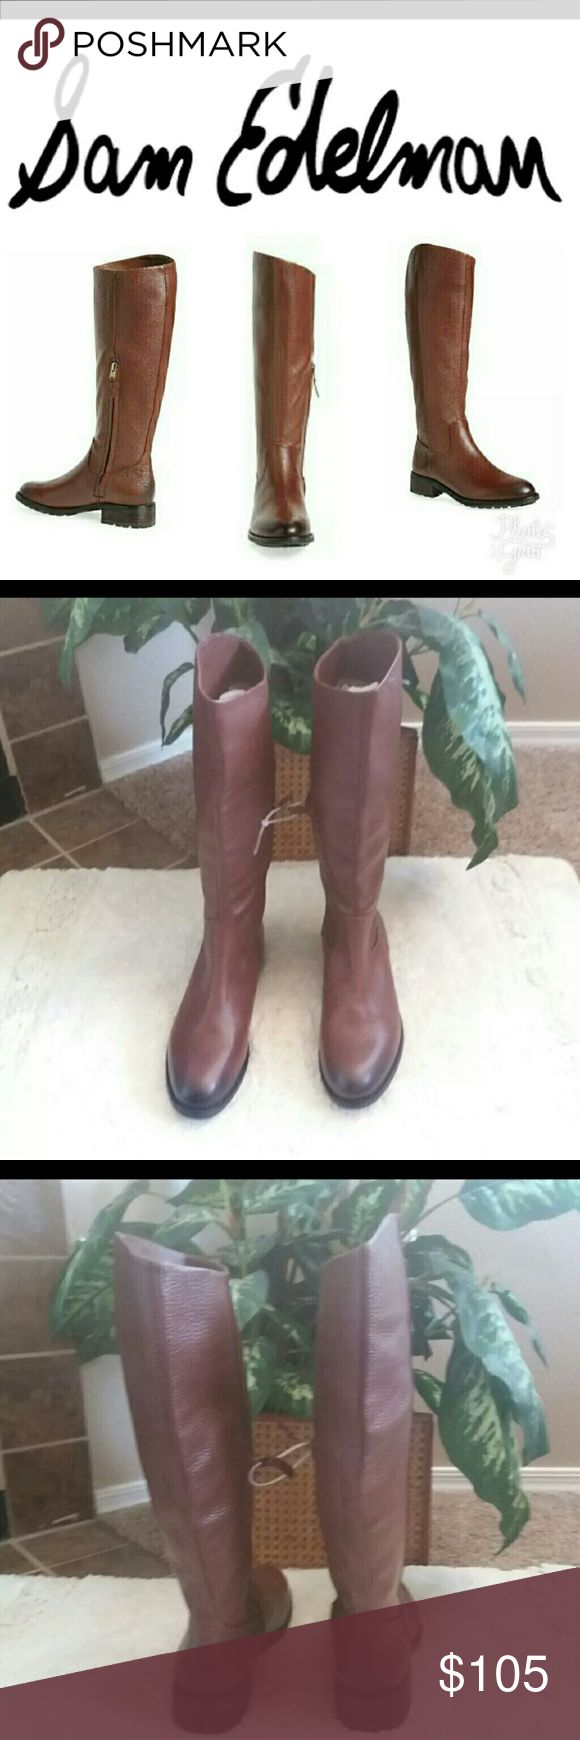 """🆕🔥Sam Edelman Ryan Riding Boots Brand New and super cute!   Sizing: True to size.  - Almond toe - Leather construction - Topstitched detail - Partial side zip closure - Lug sole - Approx. 15"""" shaft height, 14"""" opening circumference - Approx. 1.5"""" heel - Imported Materials-Leather upper, synthetic lining and sole Sam Edelman Shoes Winter & Rain Boots"""